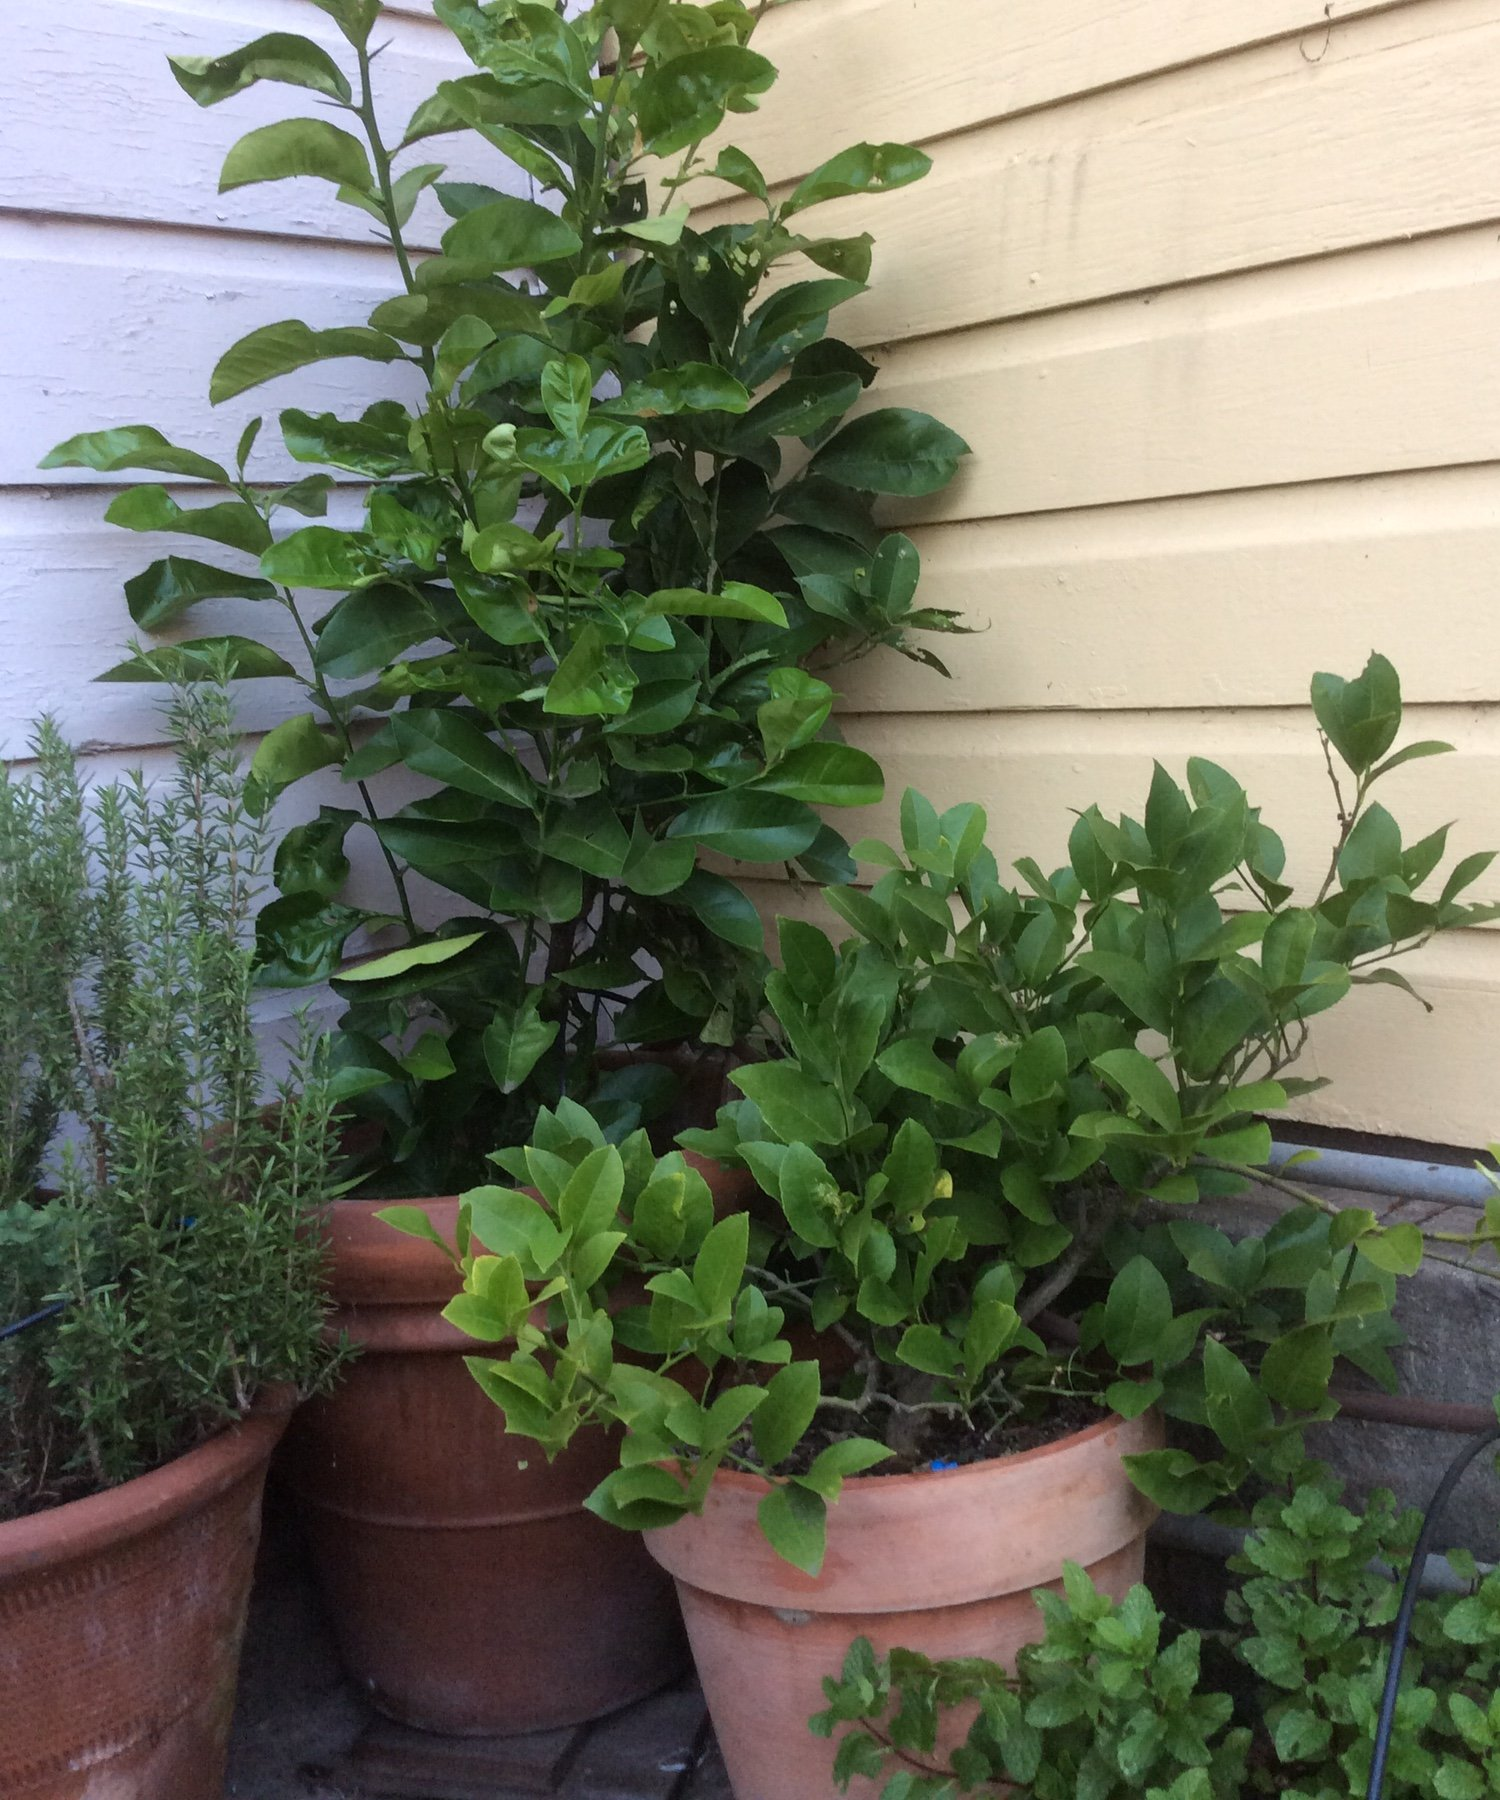 The Confusion  - My lemon trees didn't bloom this year.